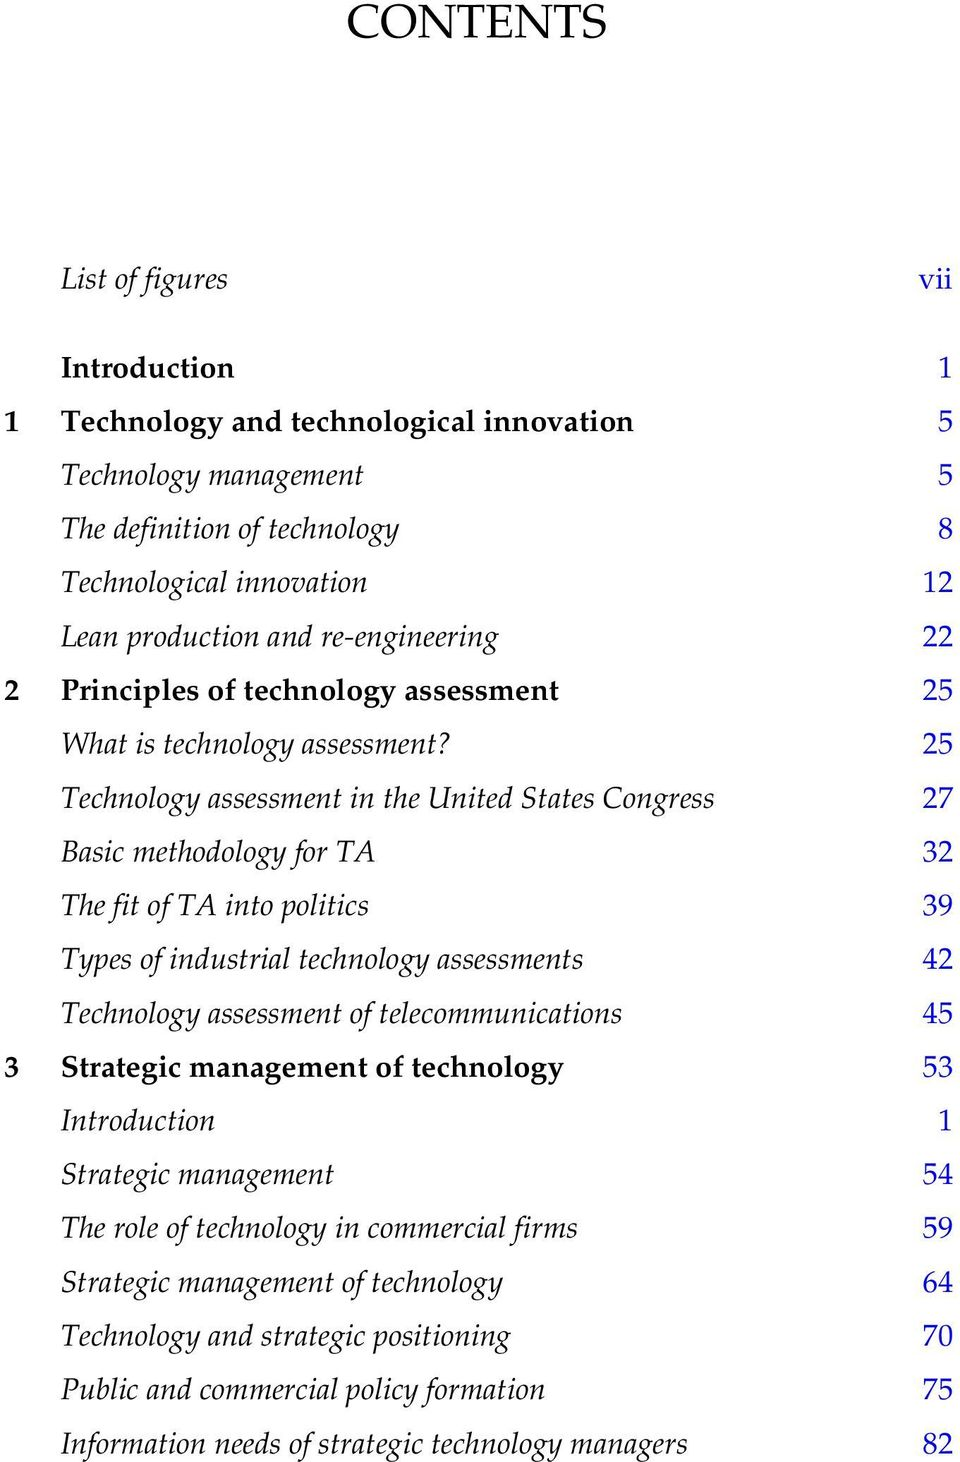 25 Technology assessment in the United States Congress 27 Basic methodology for TA 32 The fit of TA into politics 39 Types of industrial technology assessments 42 Technology assessment of